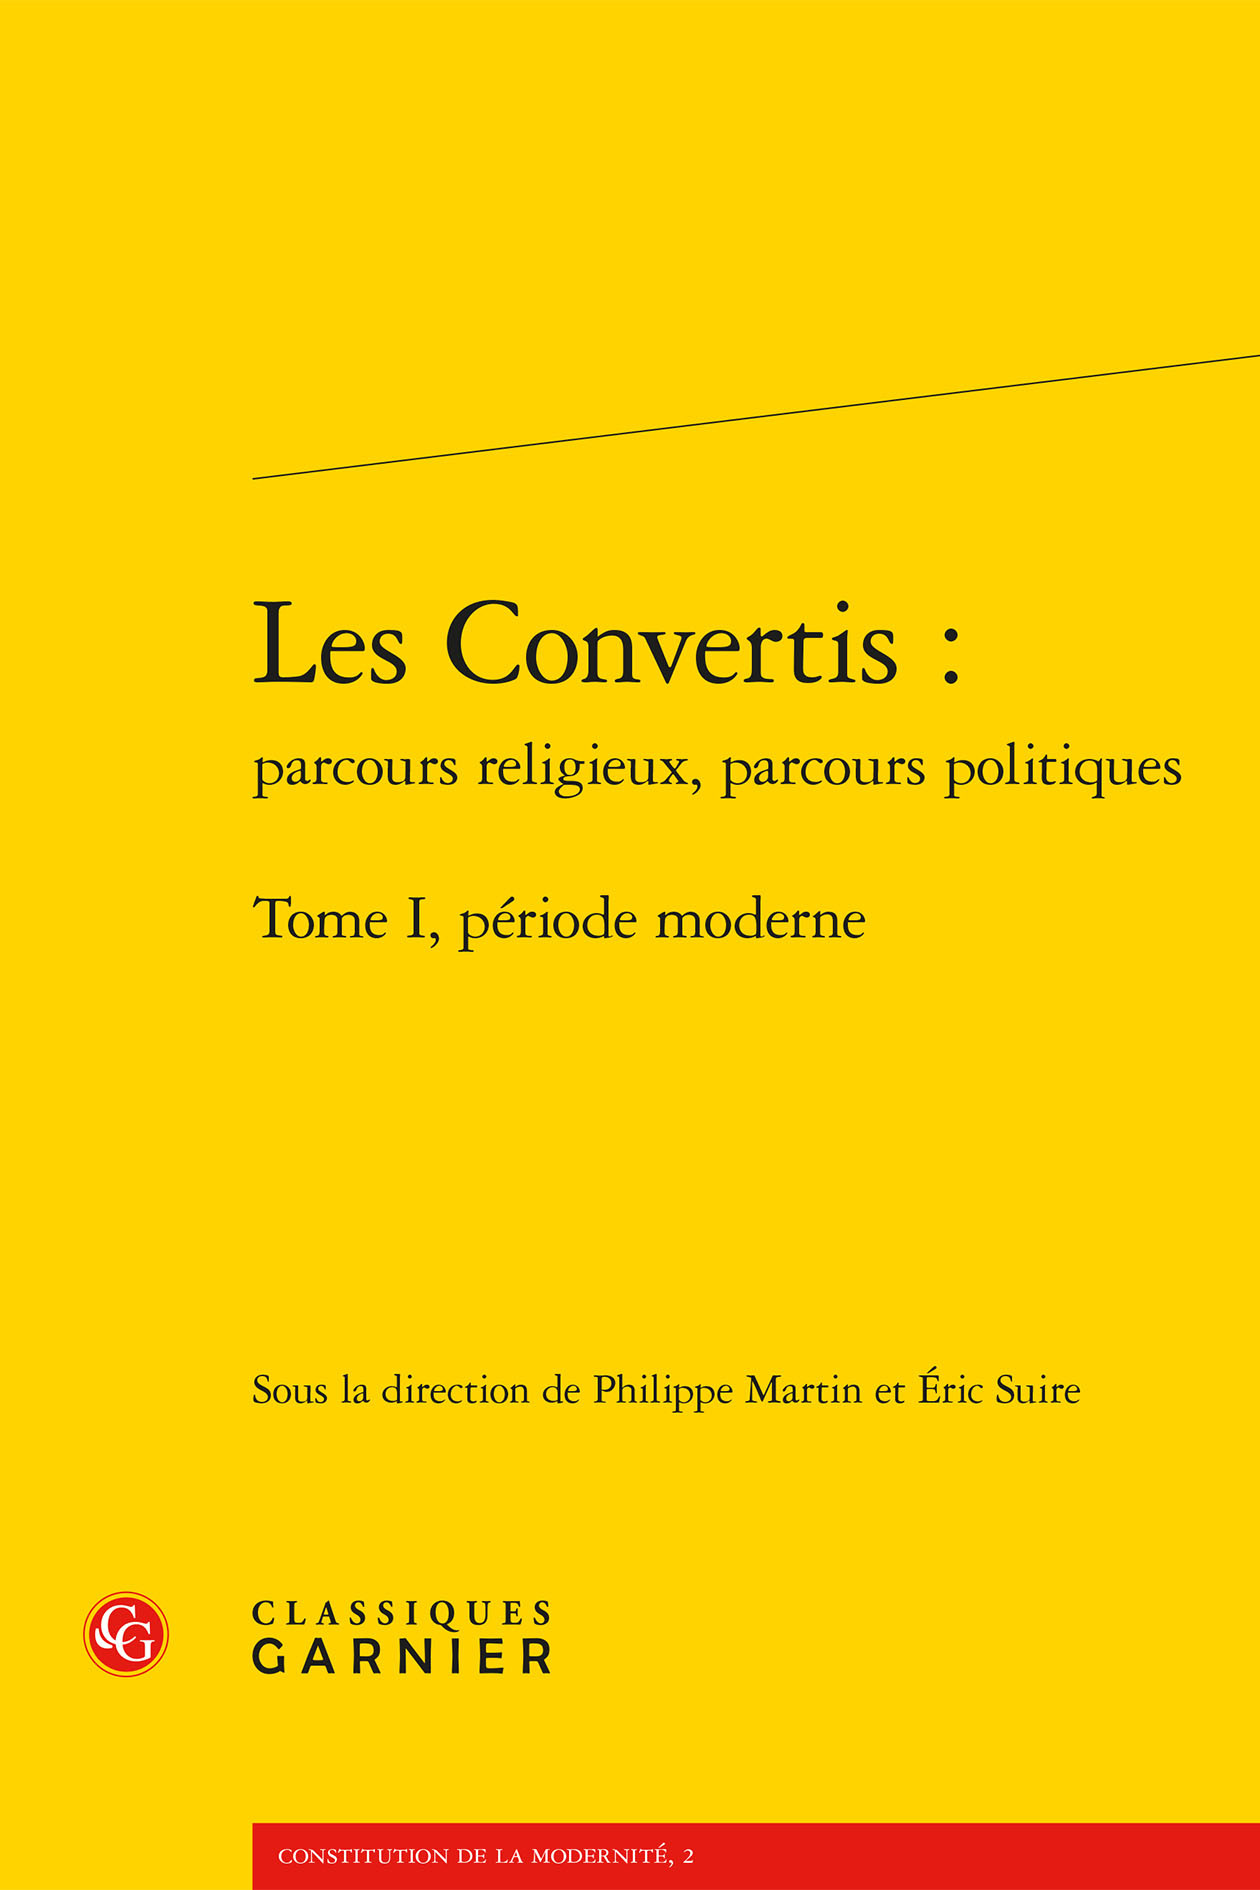 LES CONVERTIS : PARCOURS RELIGIEUX, PARCOURS POLITIQUES. TOME I - PERIODE MODERN - PERIODE MODERNE